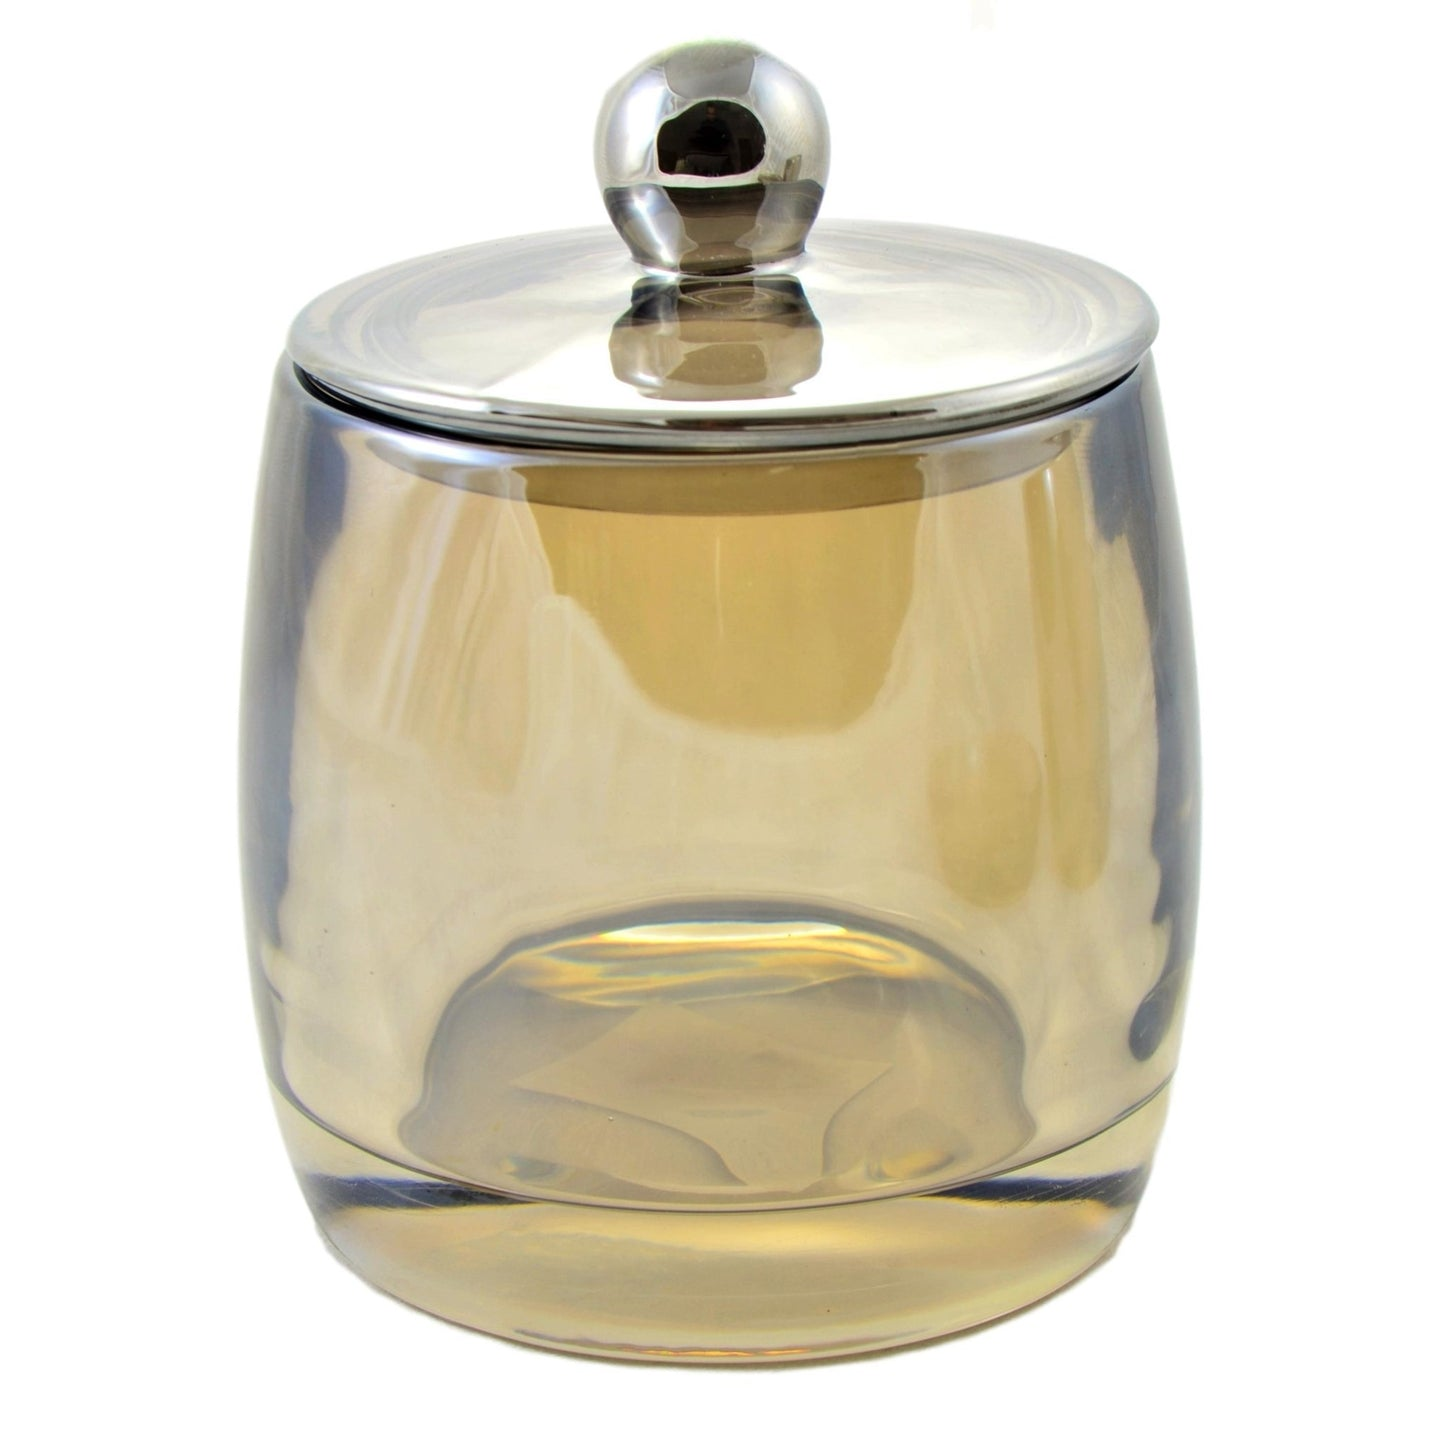 Angus Glass Bathroom Cotton Jar of Champagne Collection - Nature Home Decor